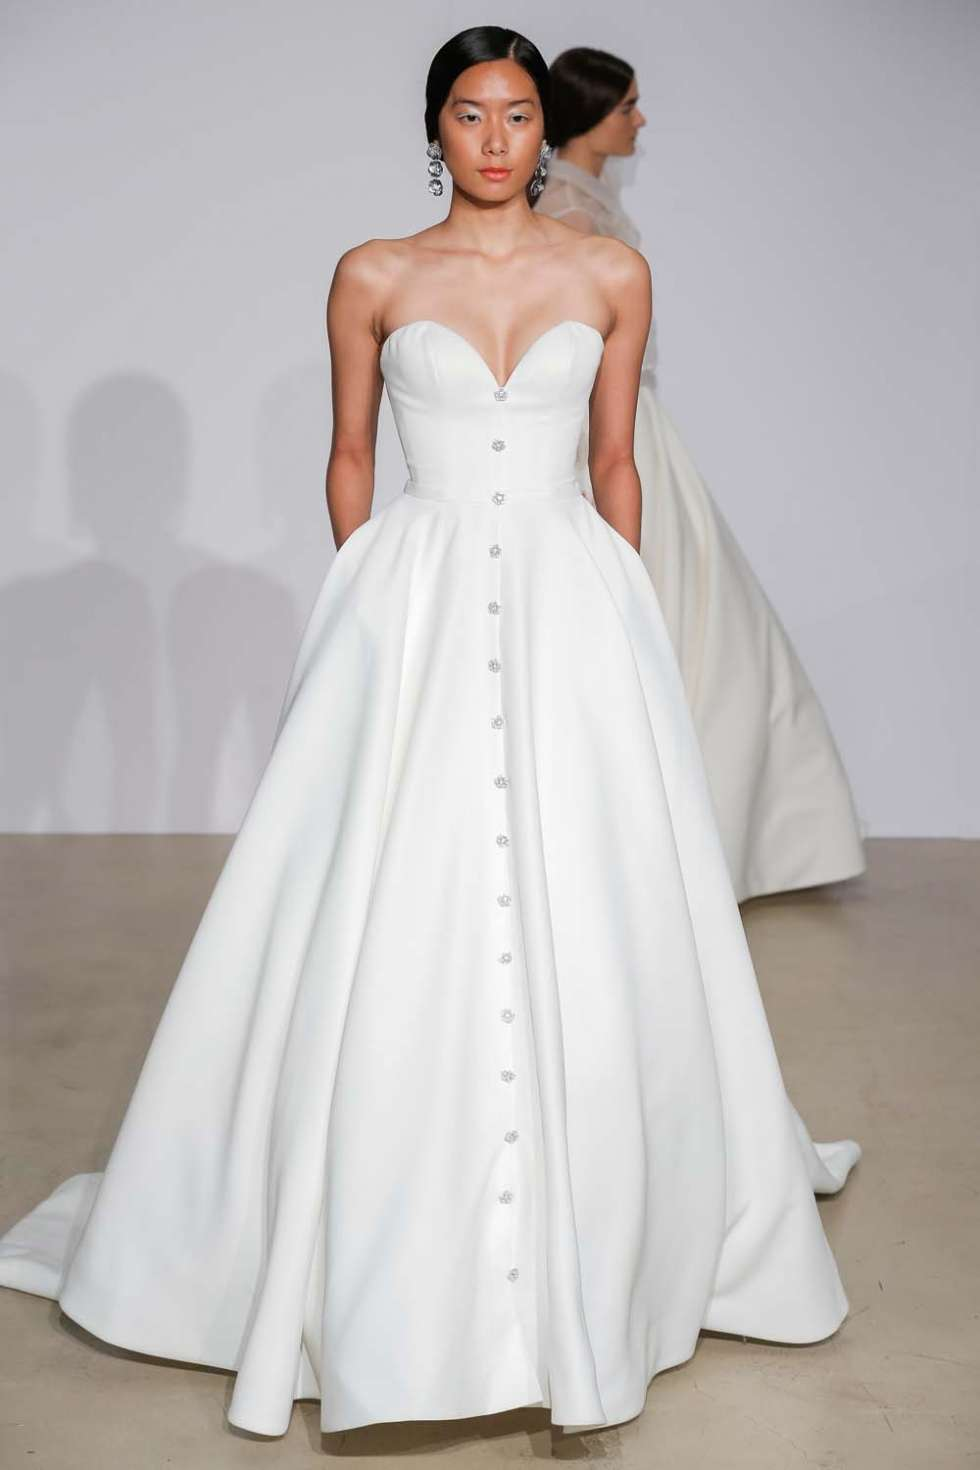 The 2018 Fall Winter Wedding Dress Collection By Justin Alexander